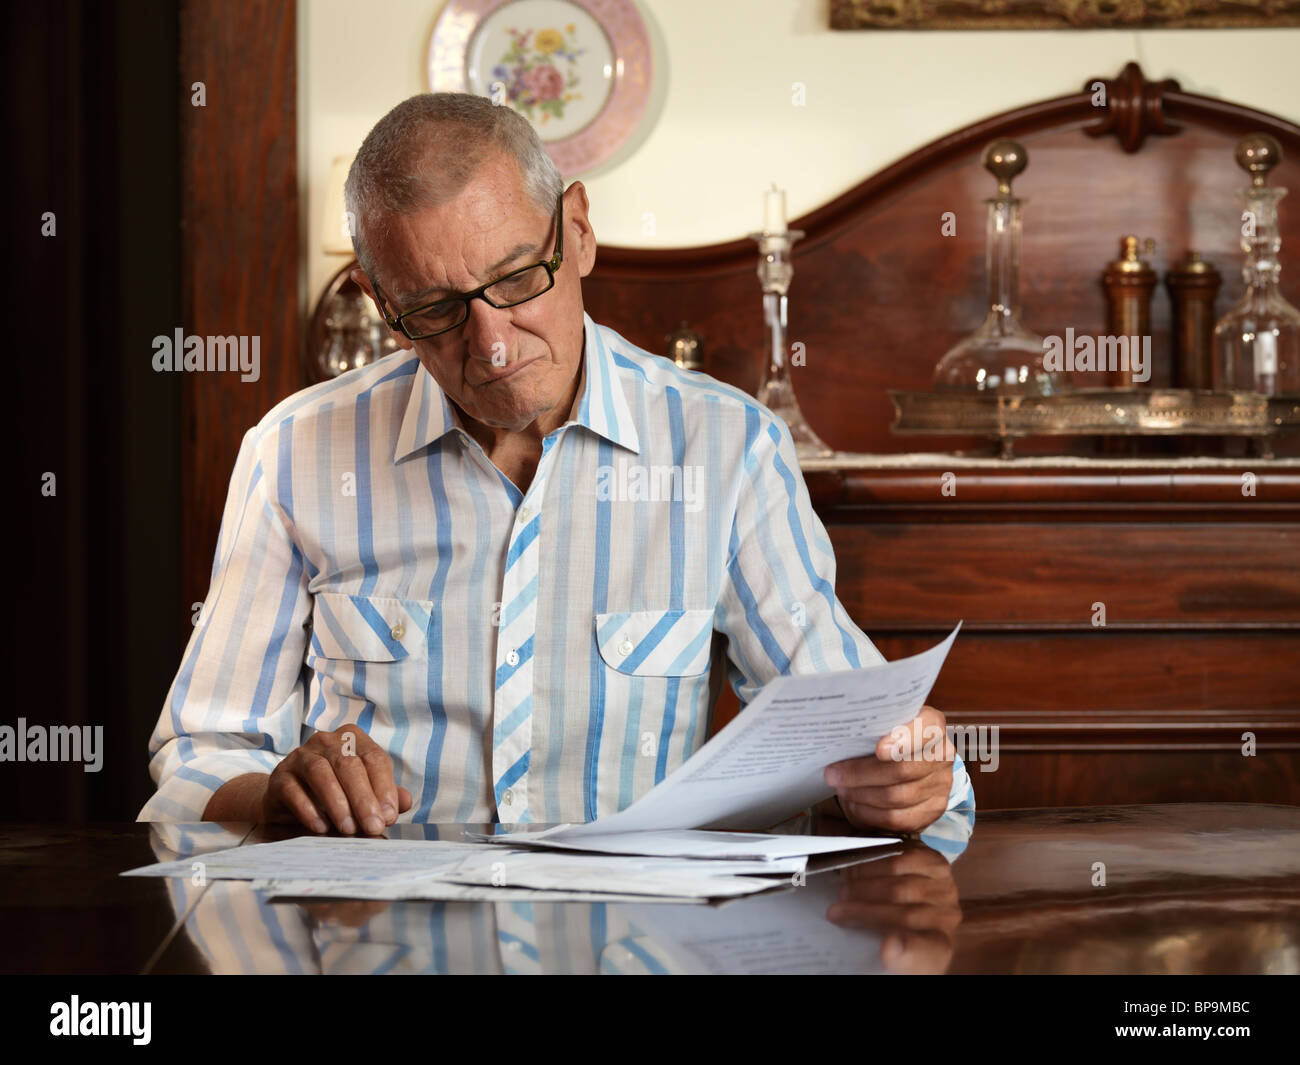 Elderly man sitting at a desk looking through bills with unhappy expression on his face - Stock Image